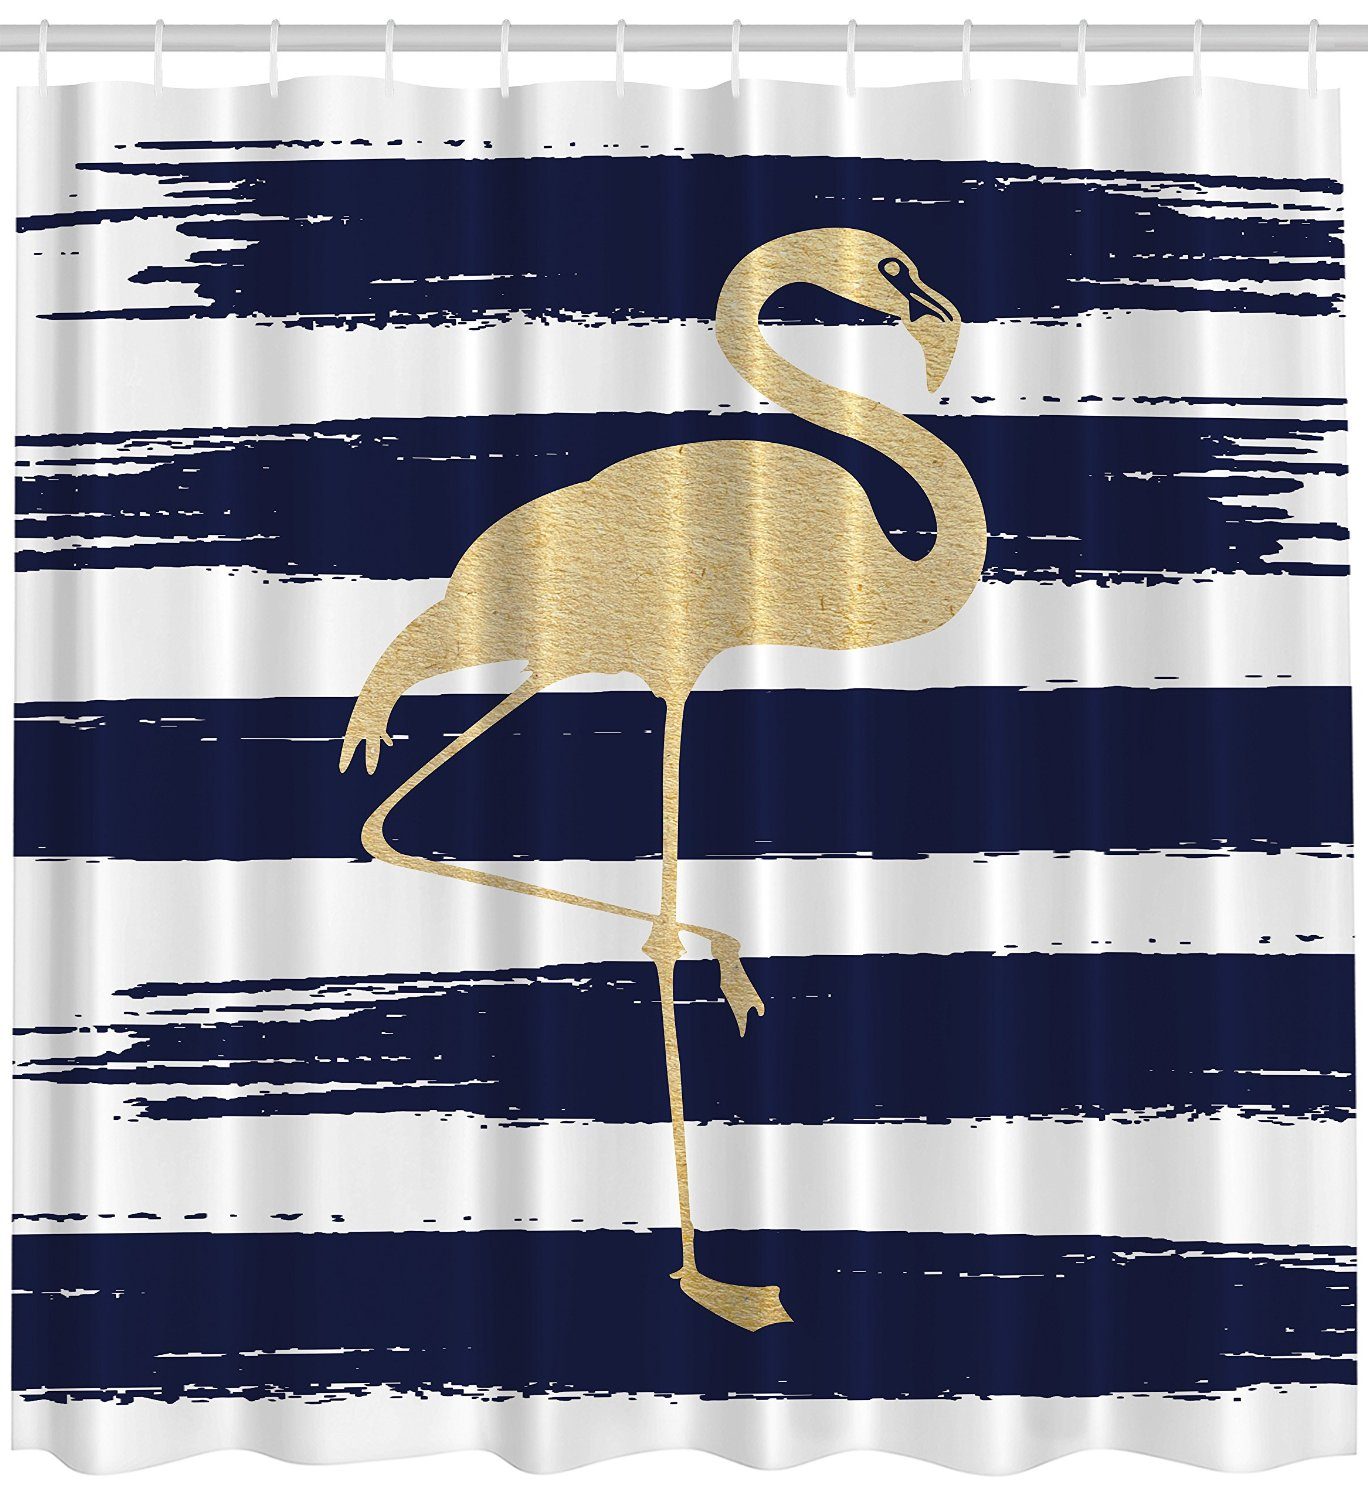 gold flamingo on a navy and white